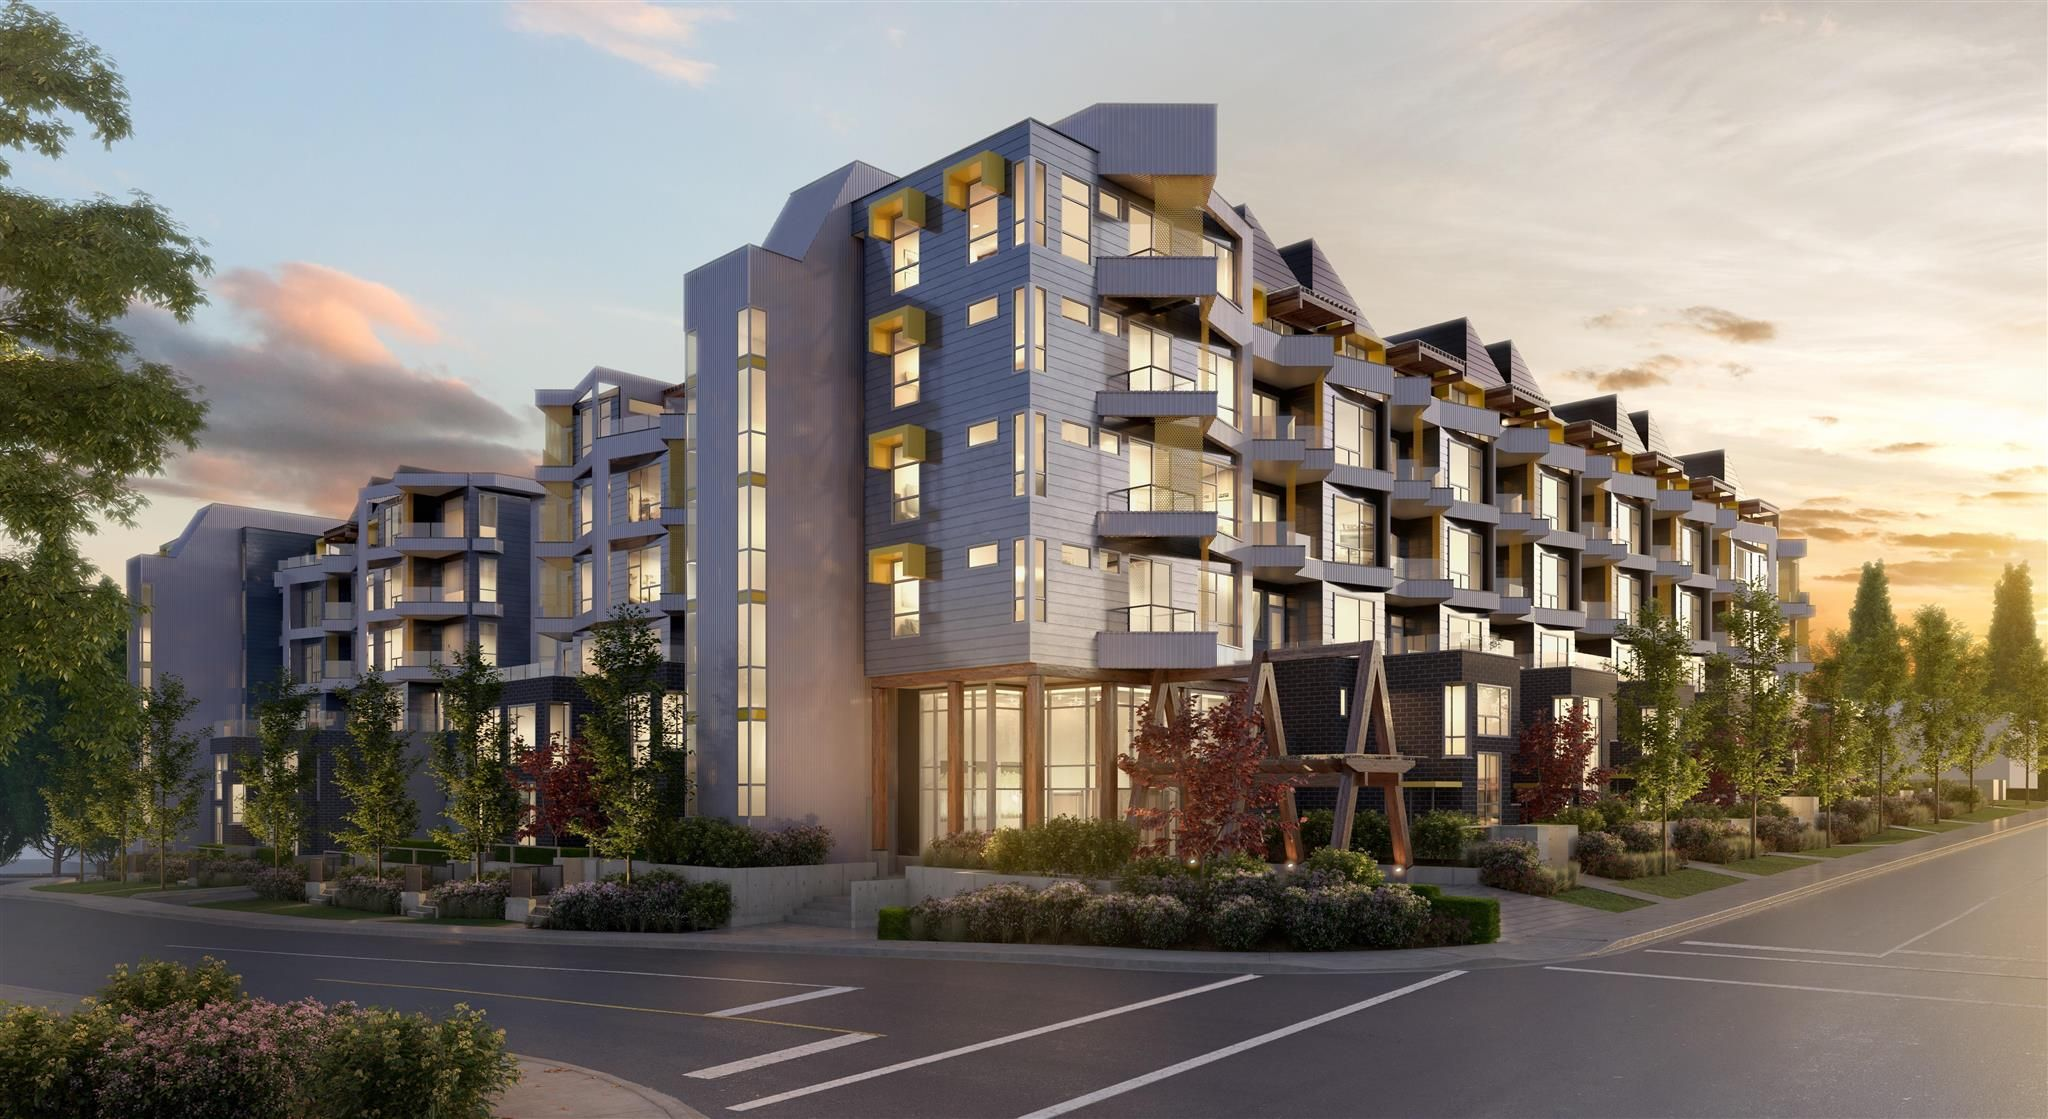 """Main Photo: 415 32838 LANDEAU Place in Abbotsford: Central Abbotsford Condo for sale in """"Court"""" : MLS®# R2609695"""